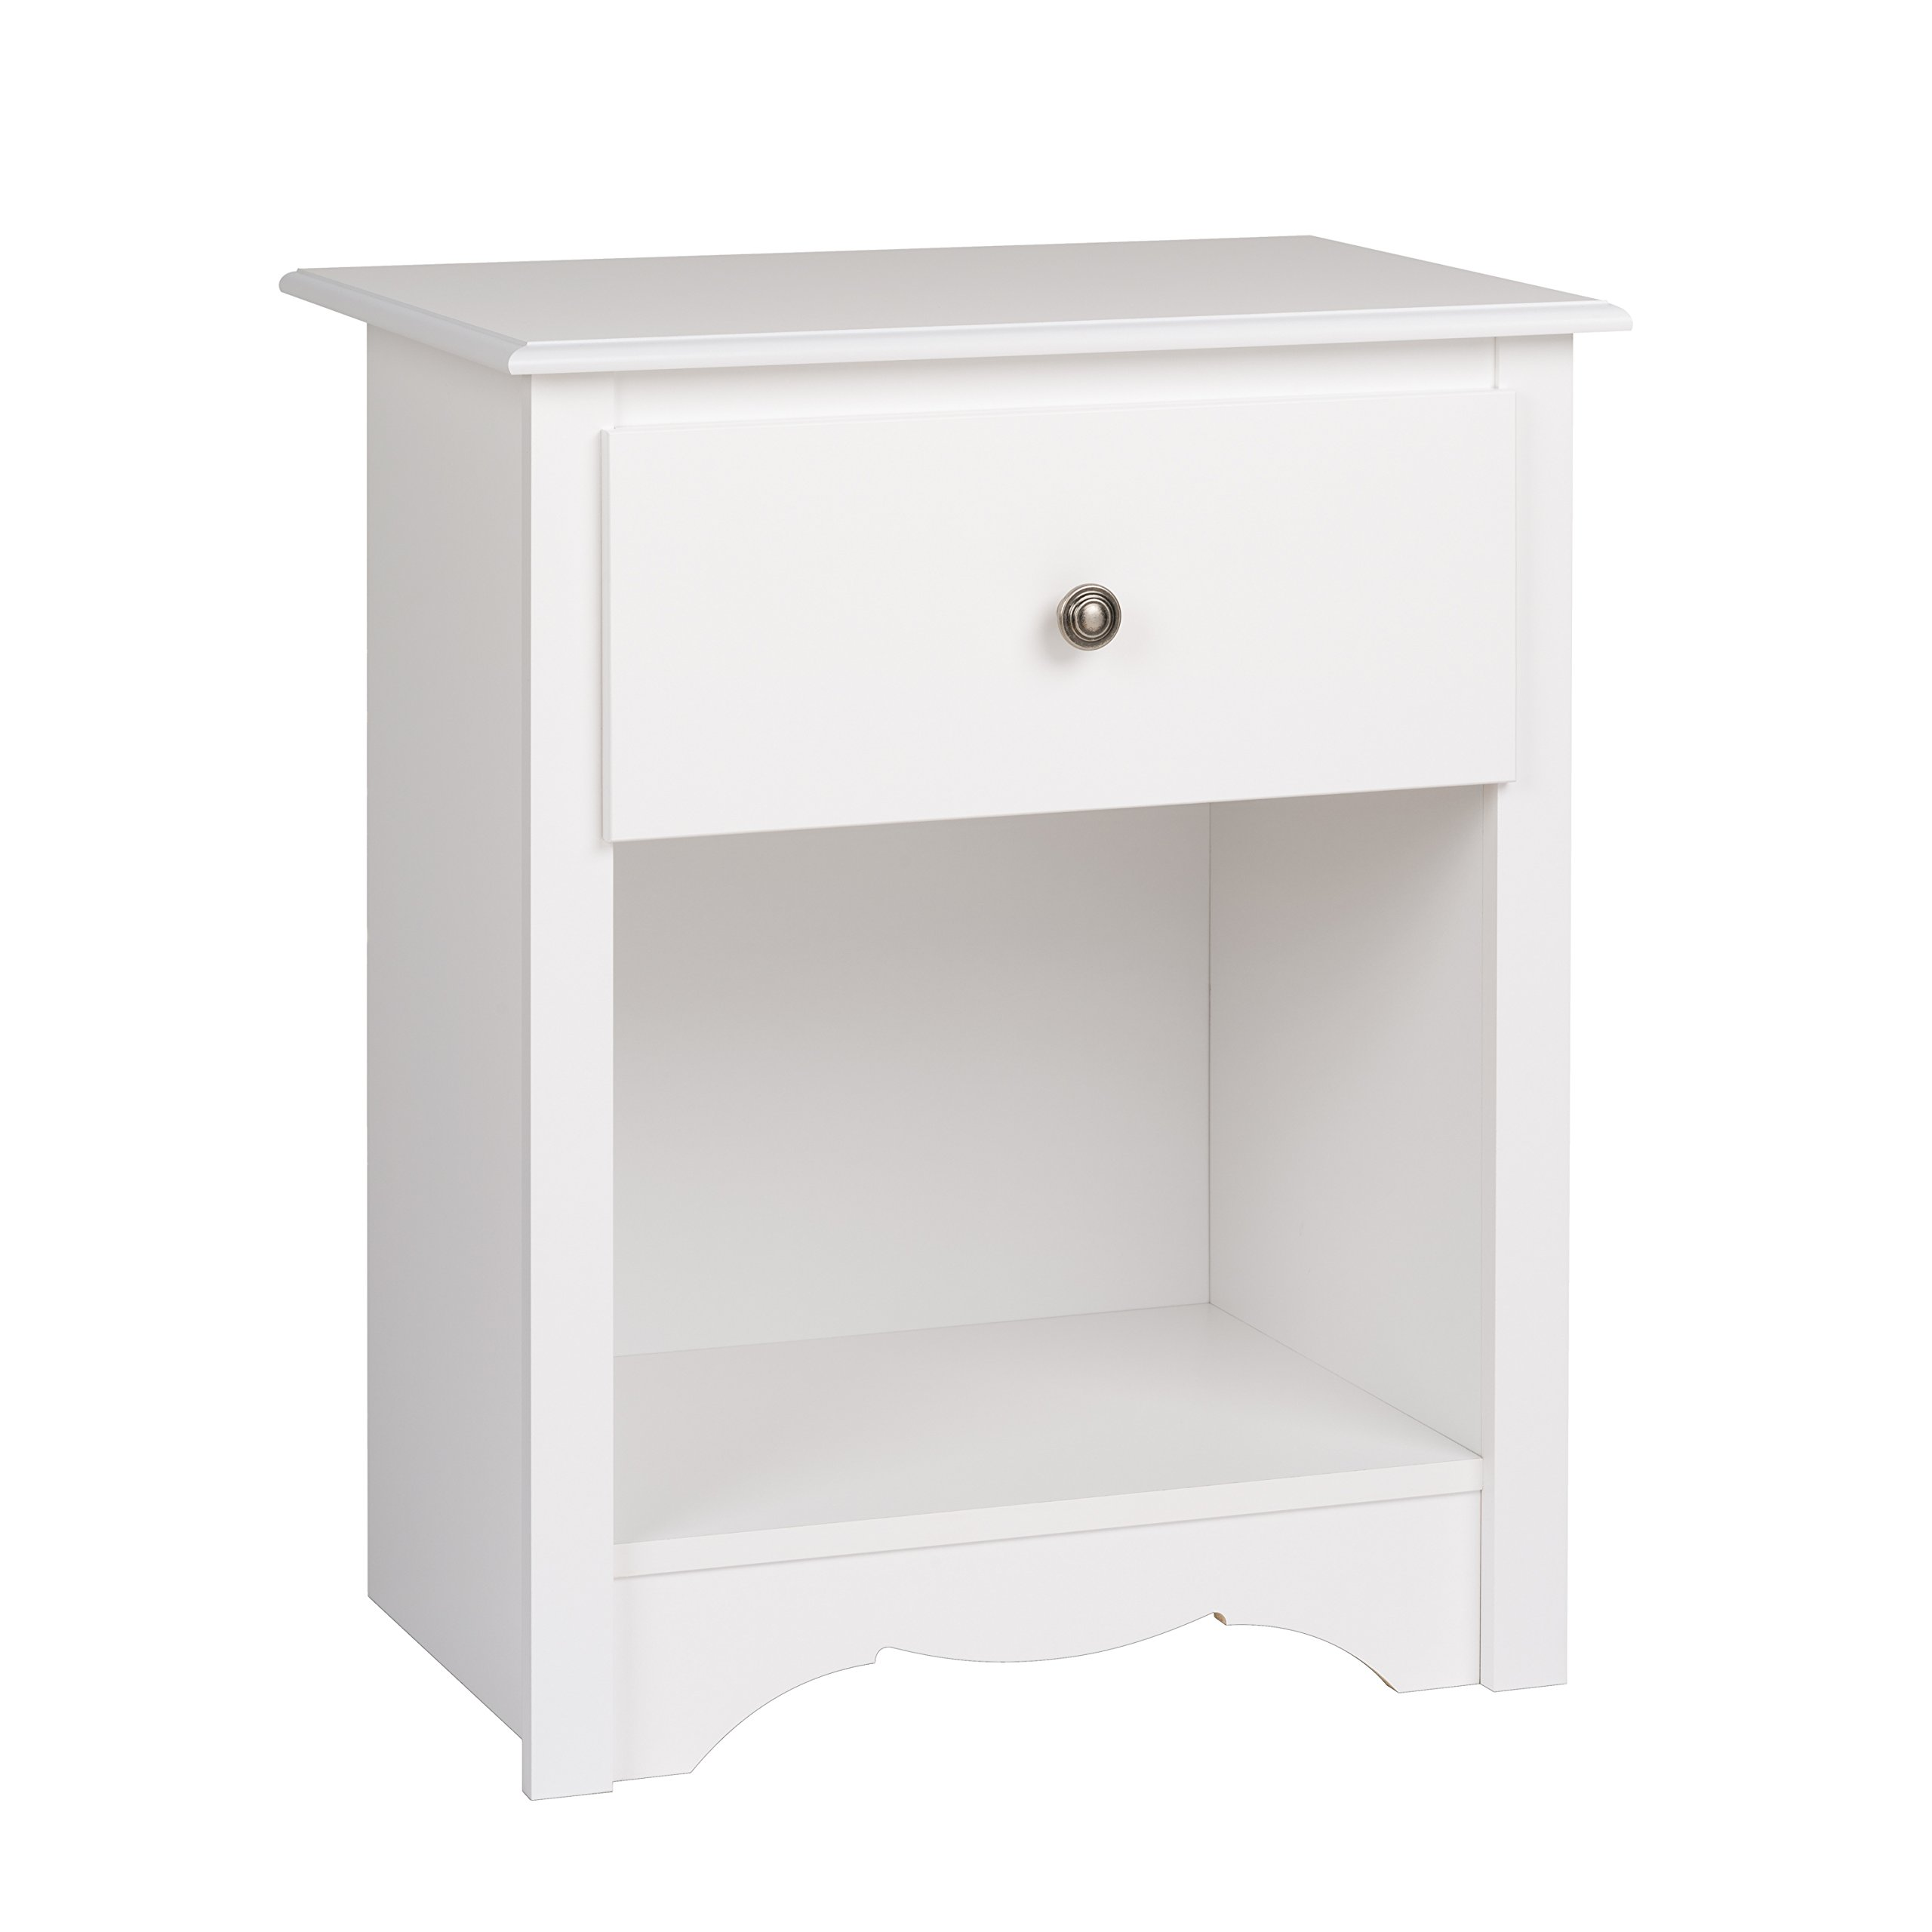 Prepac WDC-2401 Monterey Nightstand, Tall 1-Drawer, White